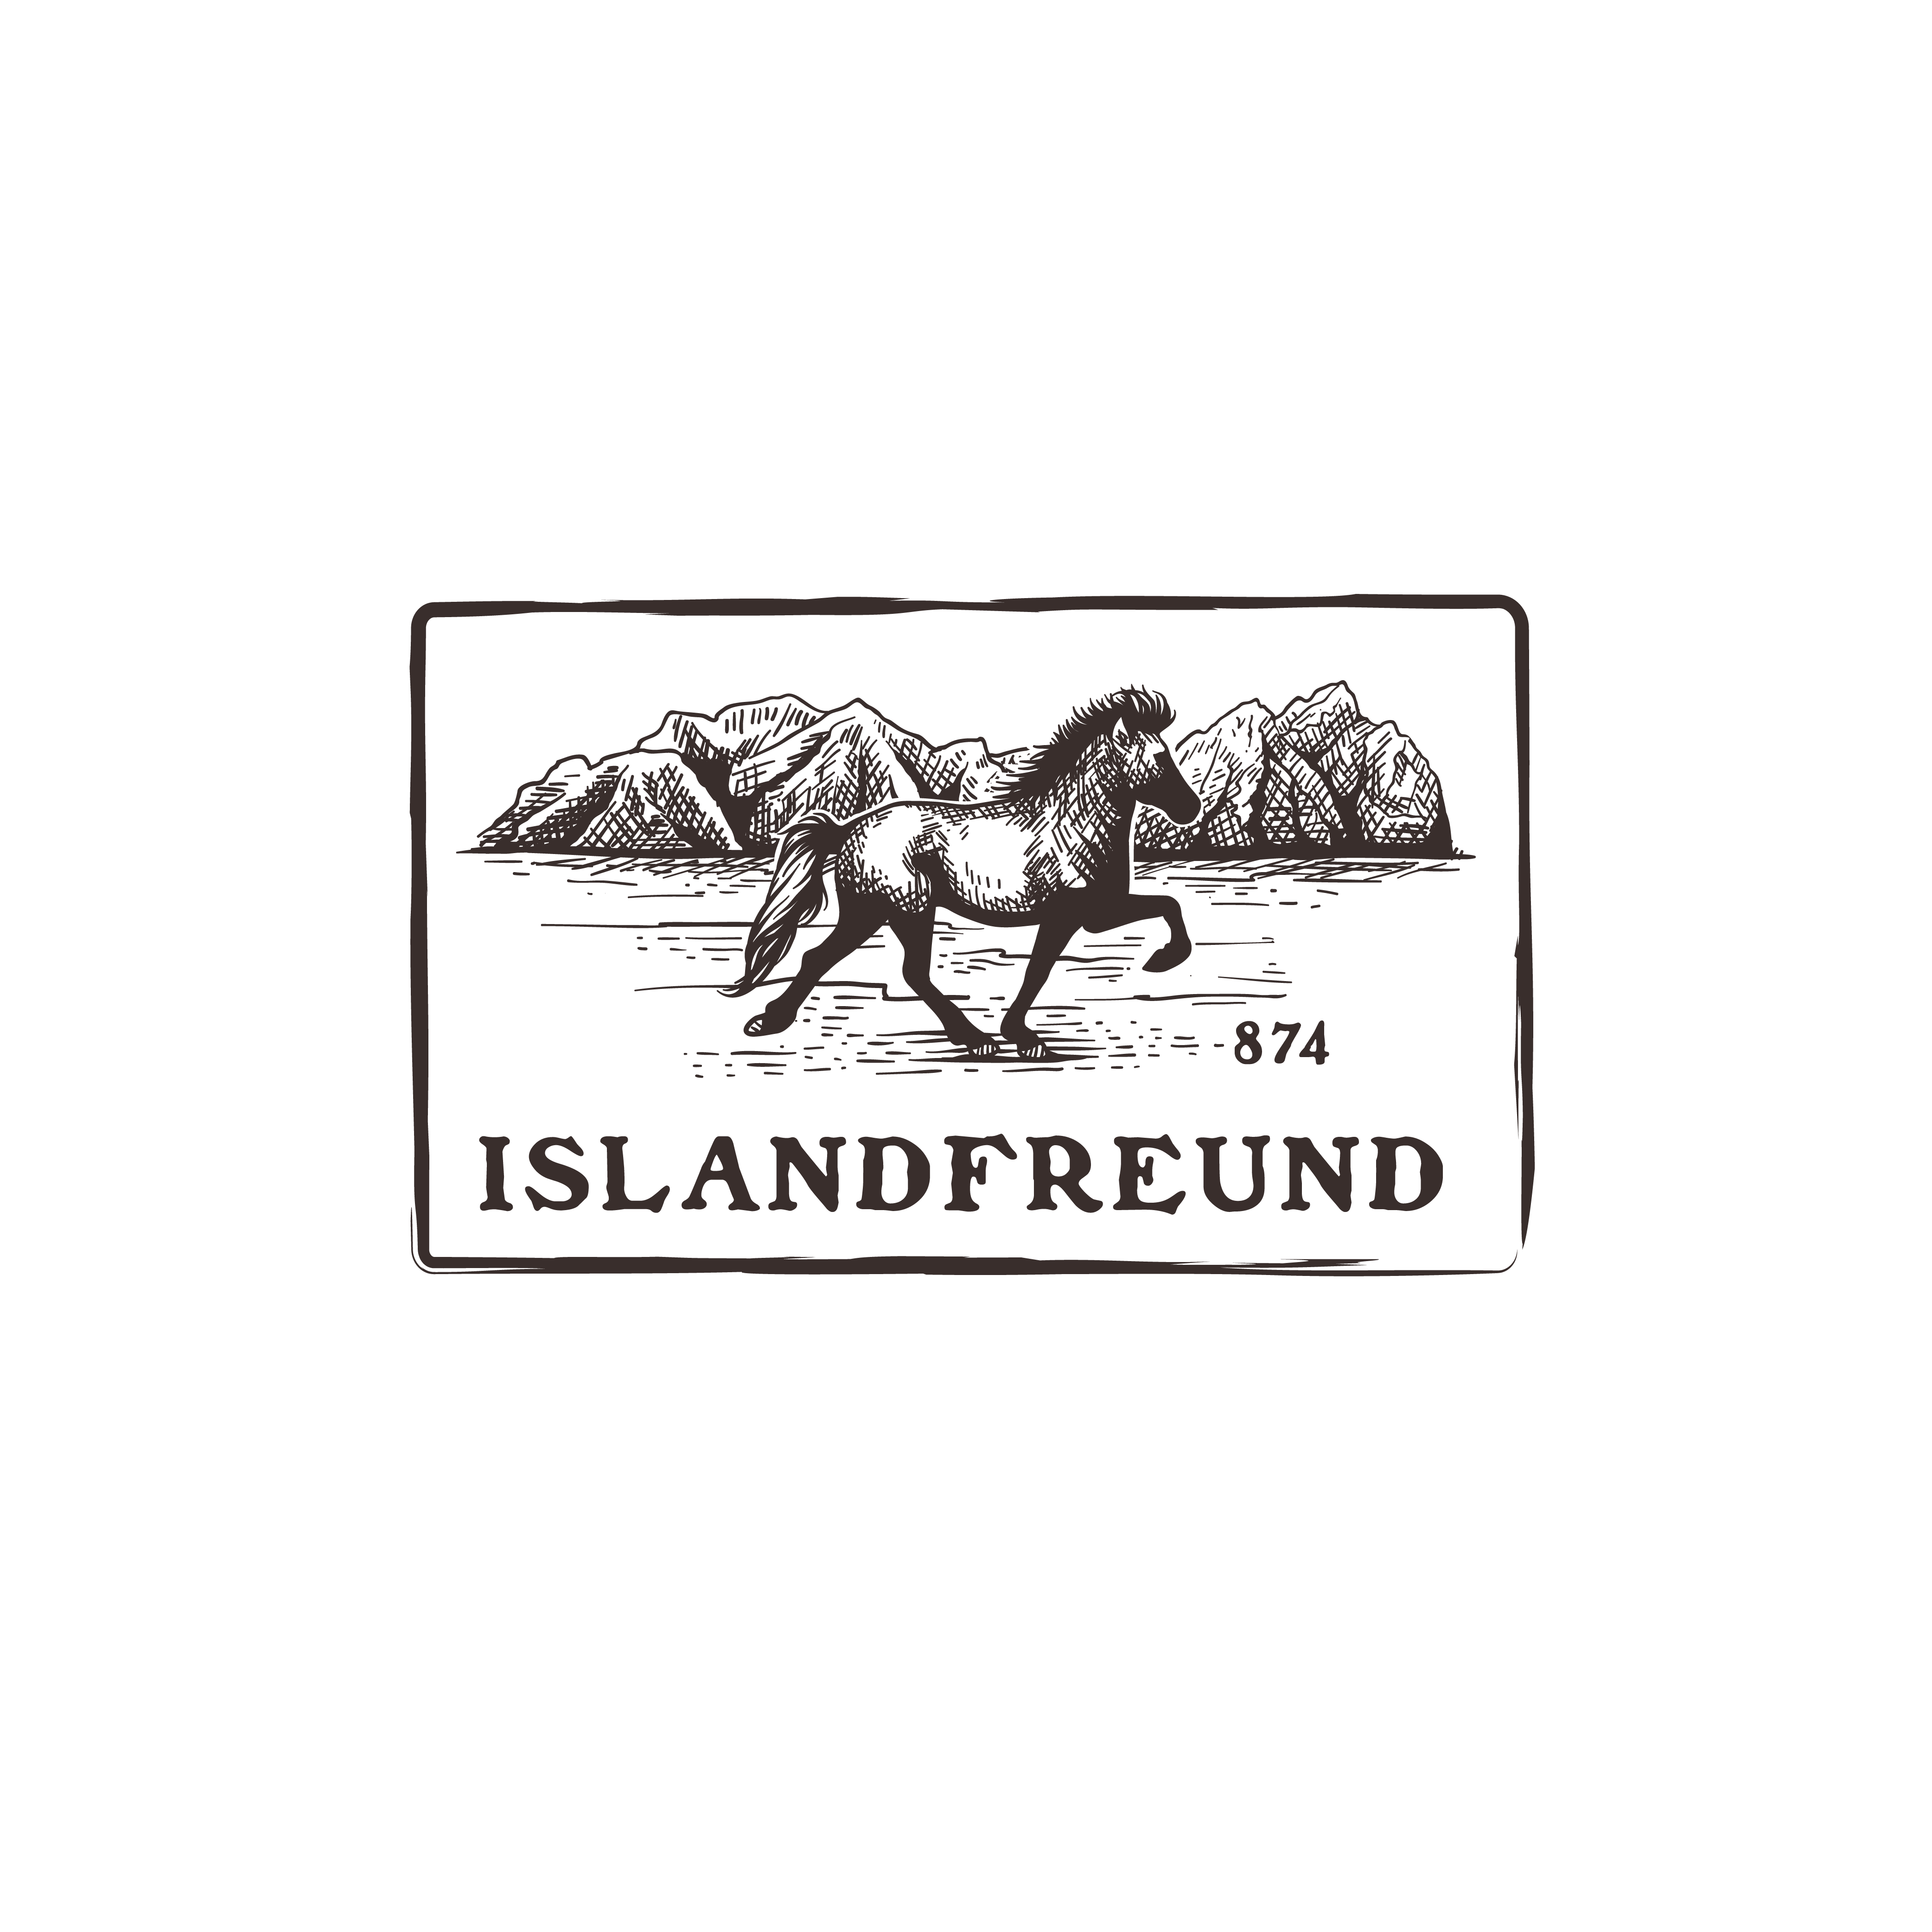 Icelandic Horse - Animal T-shirt Design in your personal visual style